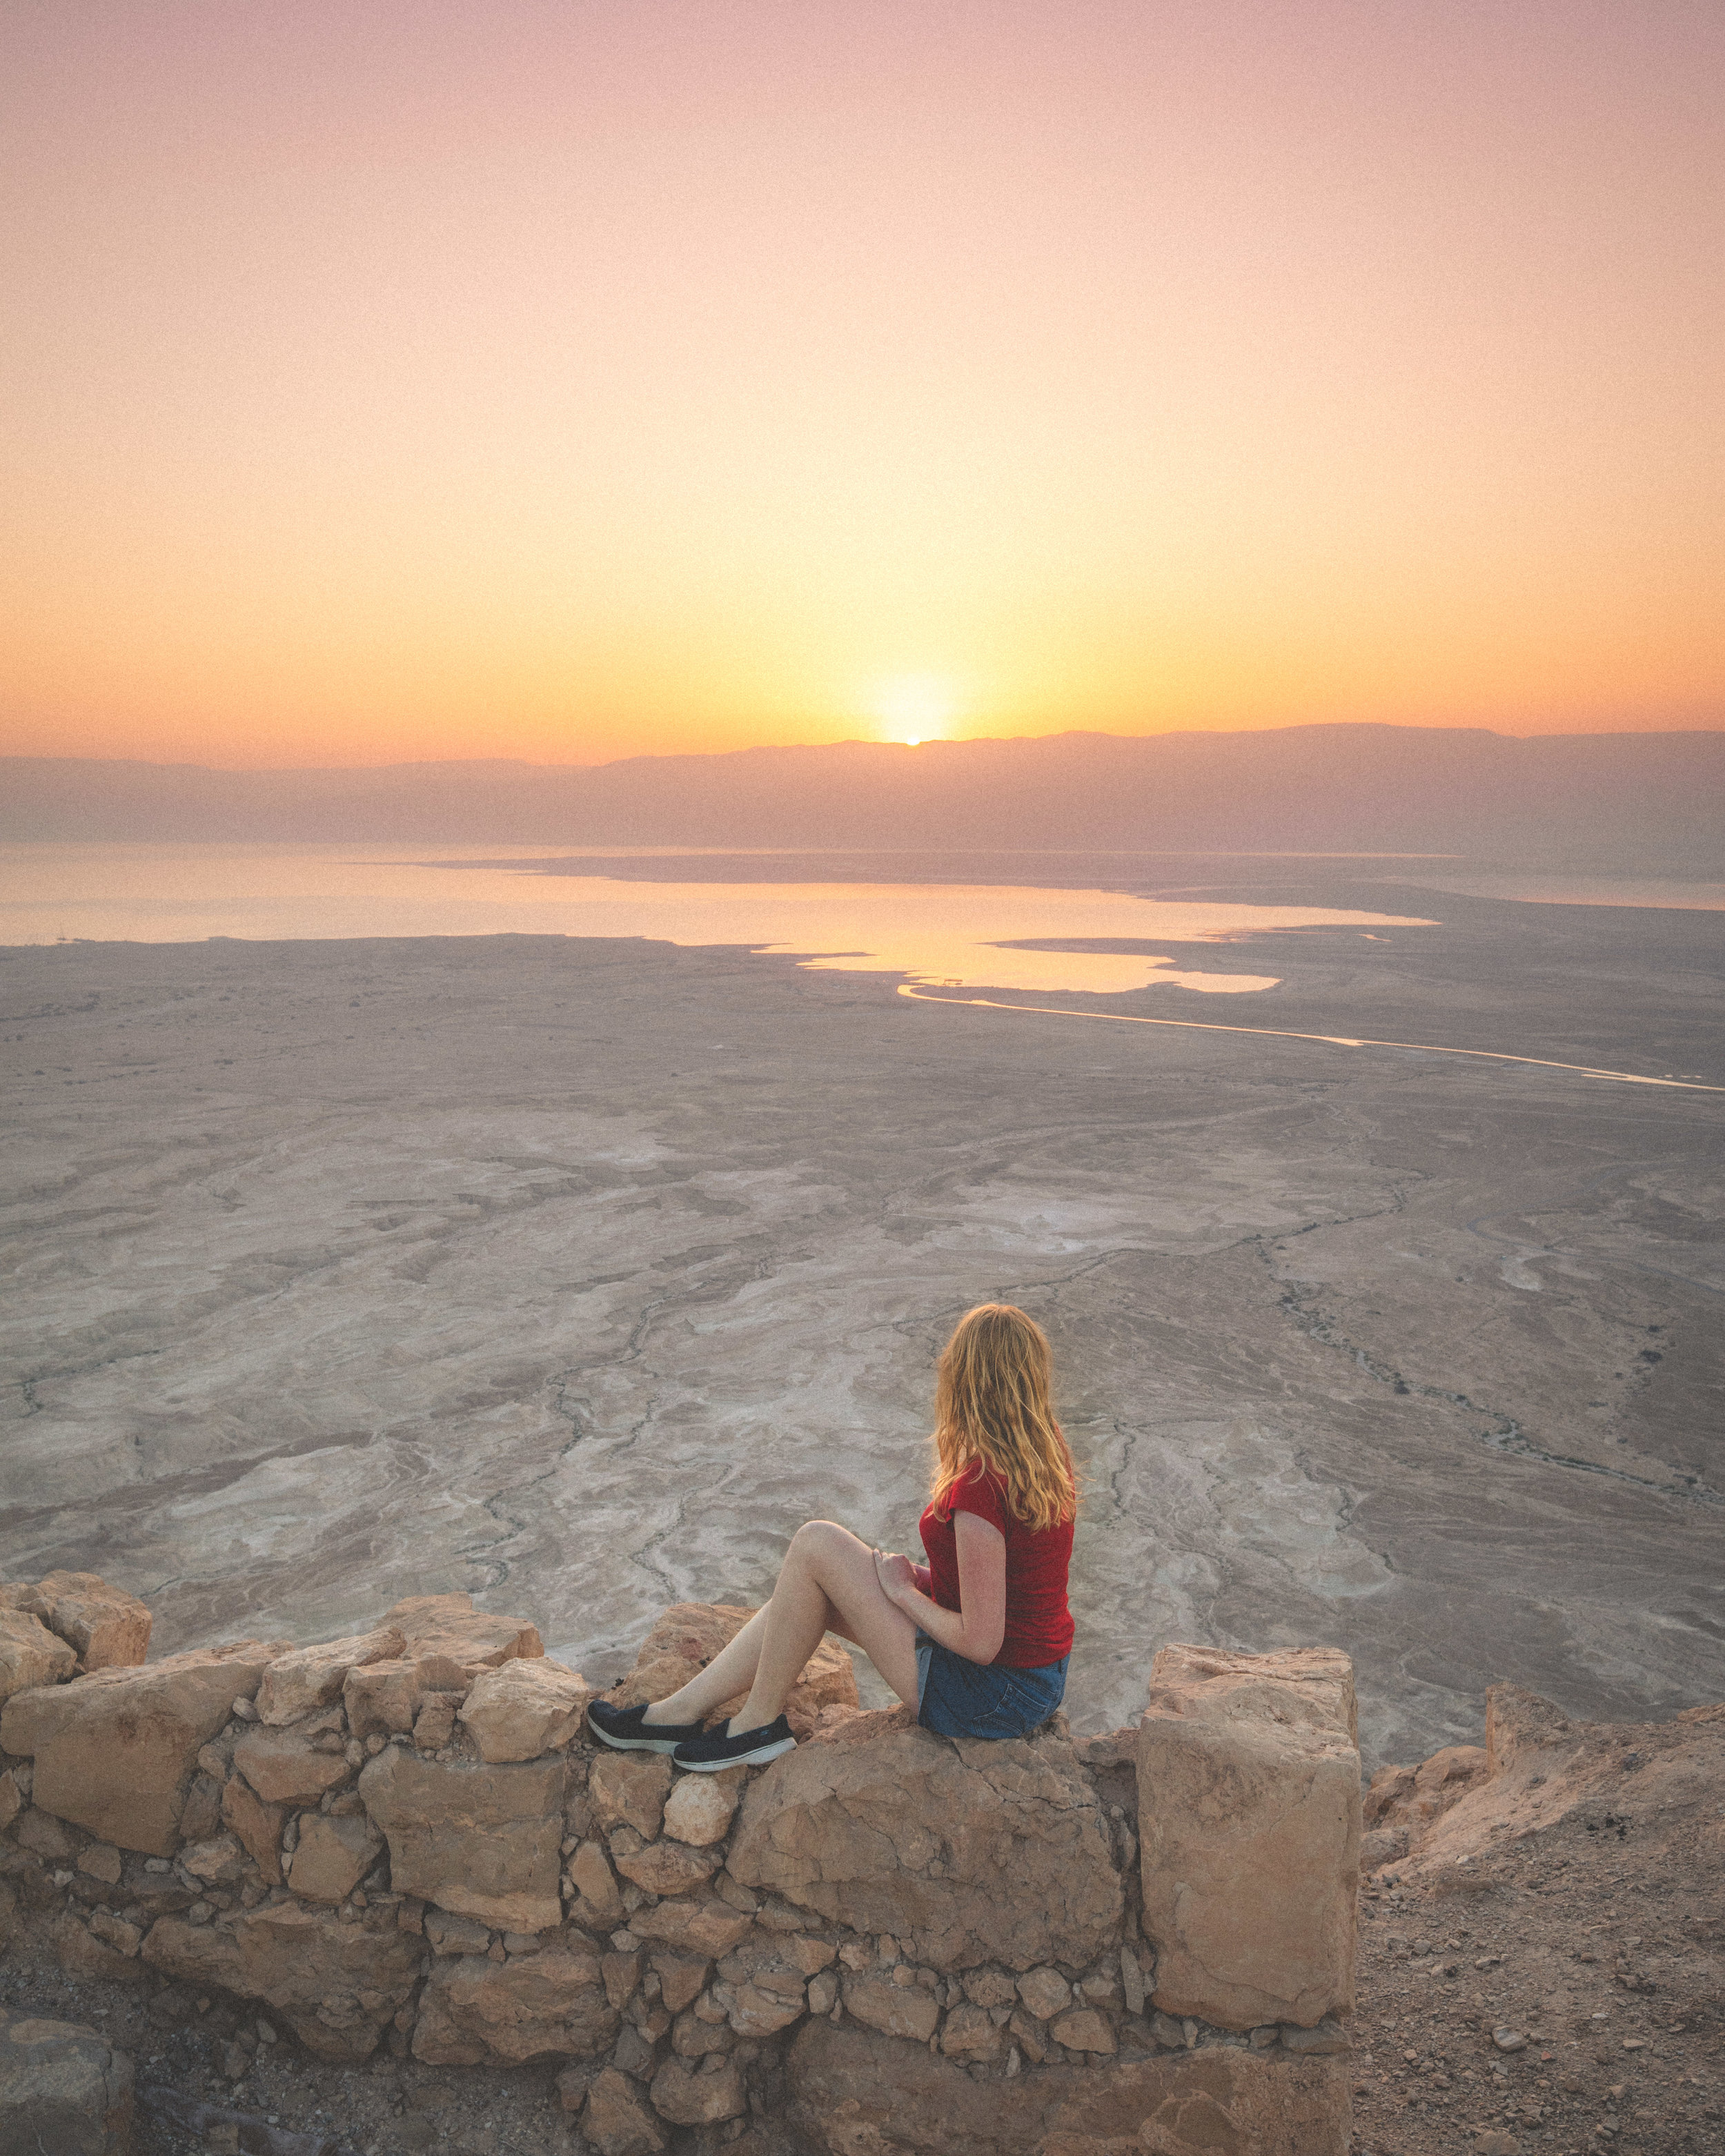 Sunrise at Masada Fortress